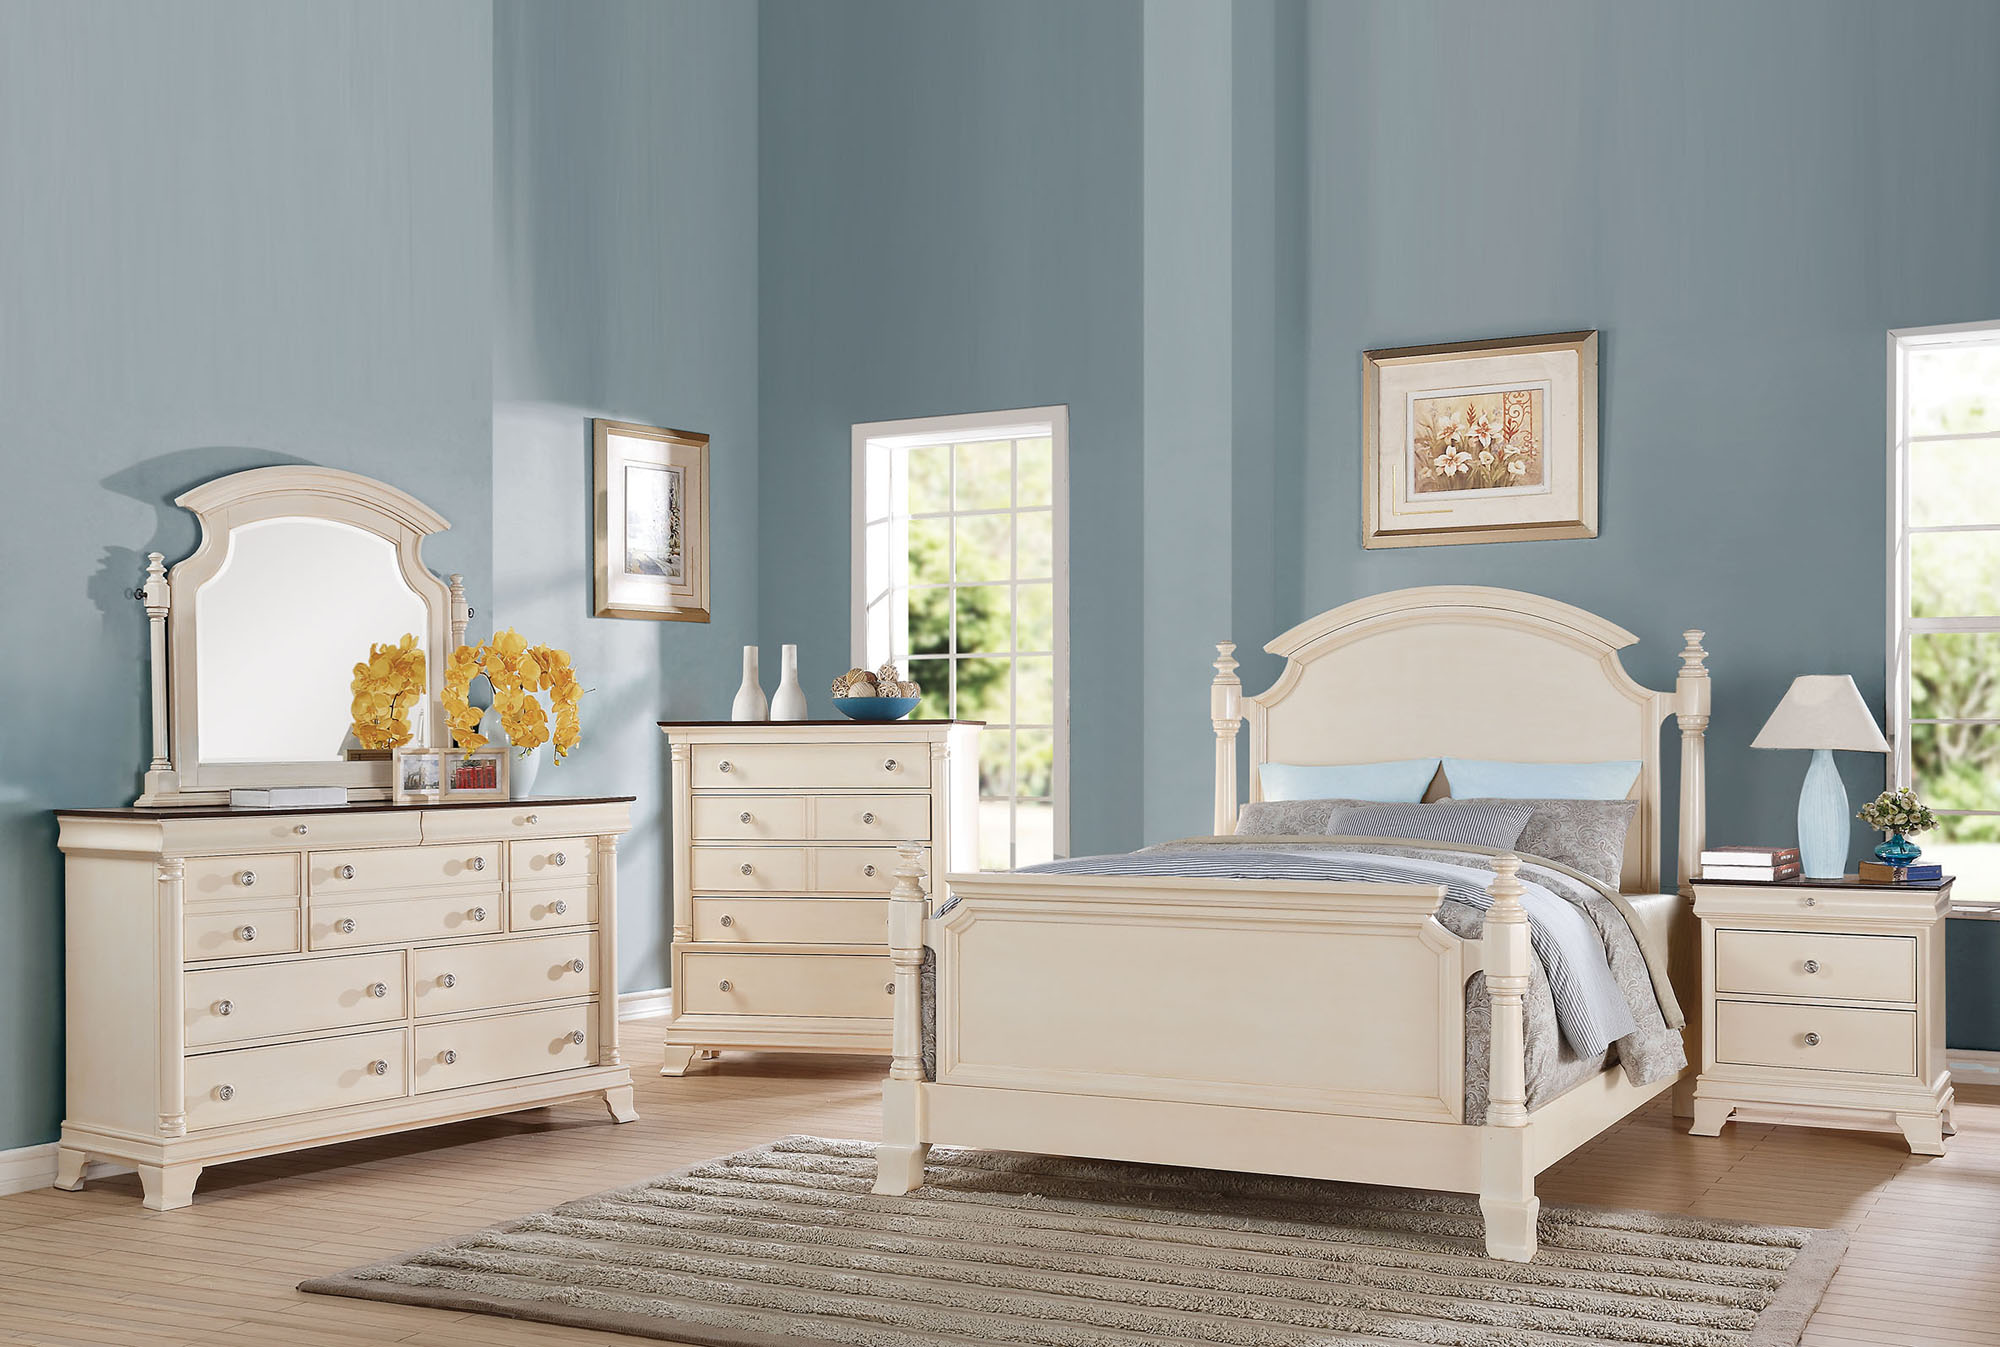 Tahira Queen Poster Bed Acme Furniture Home Gallery